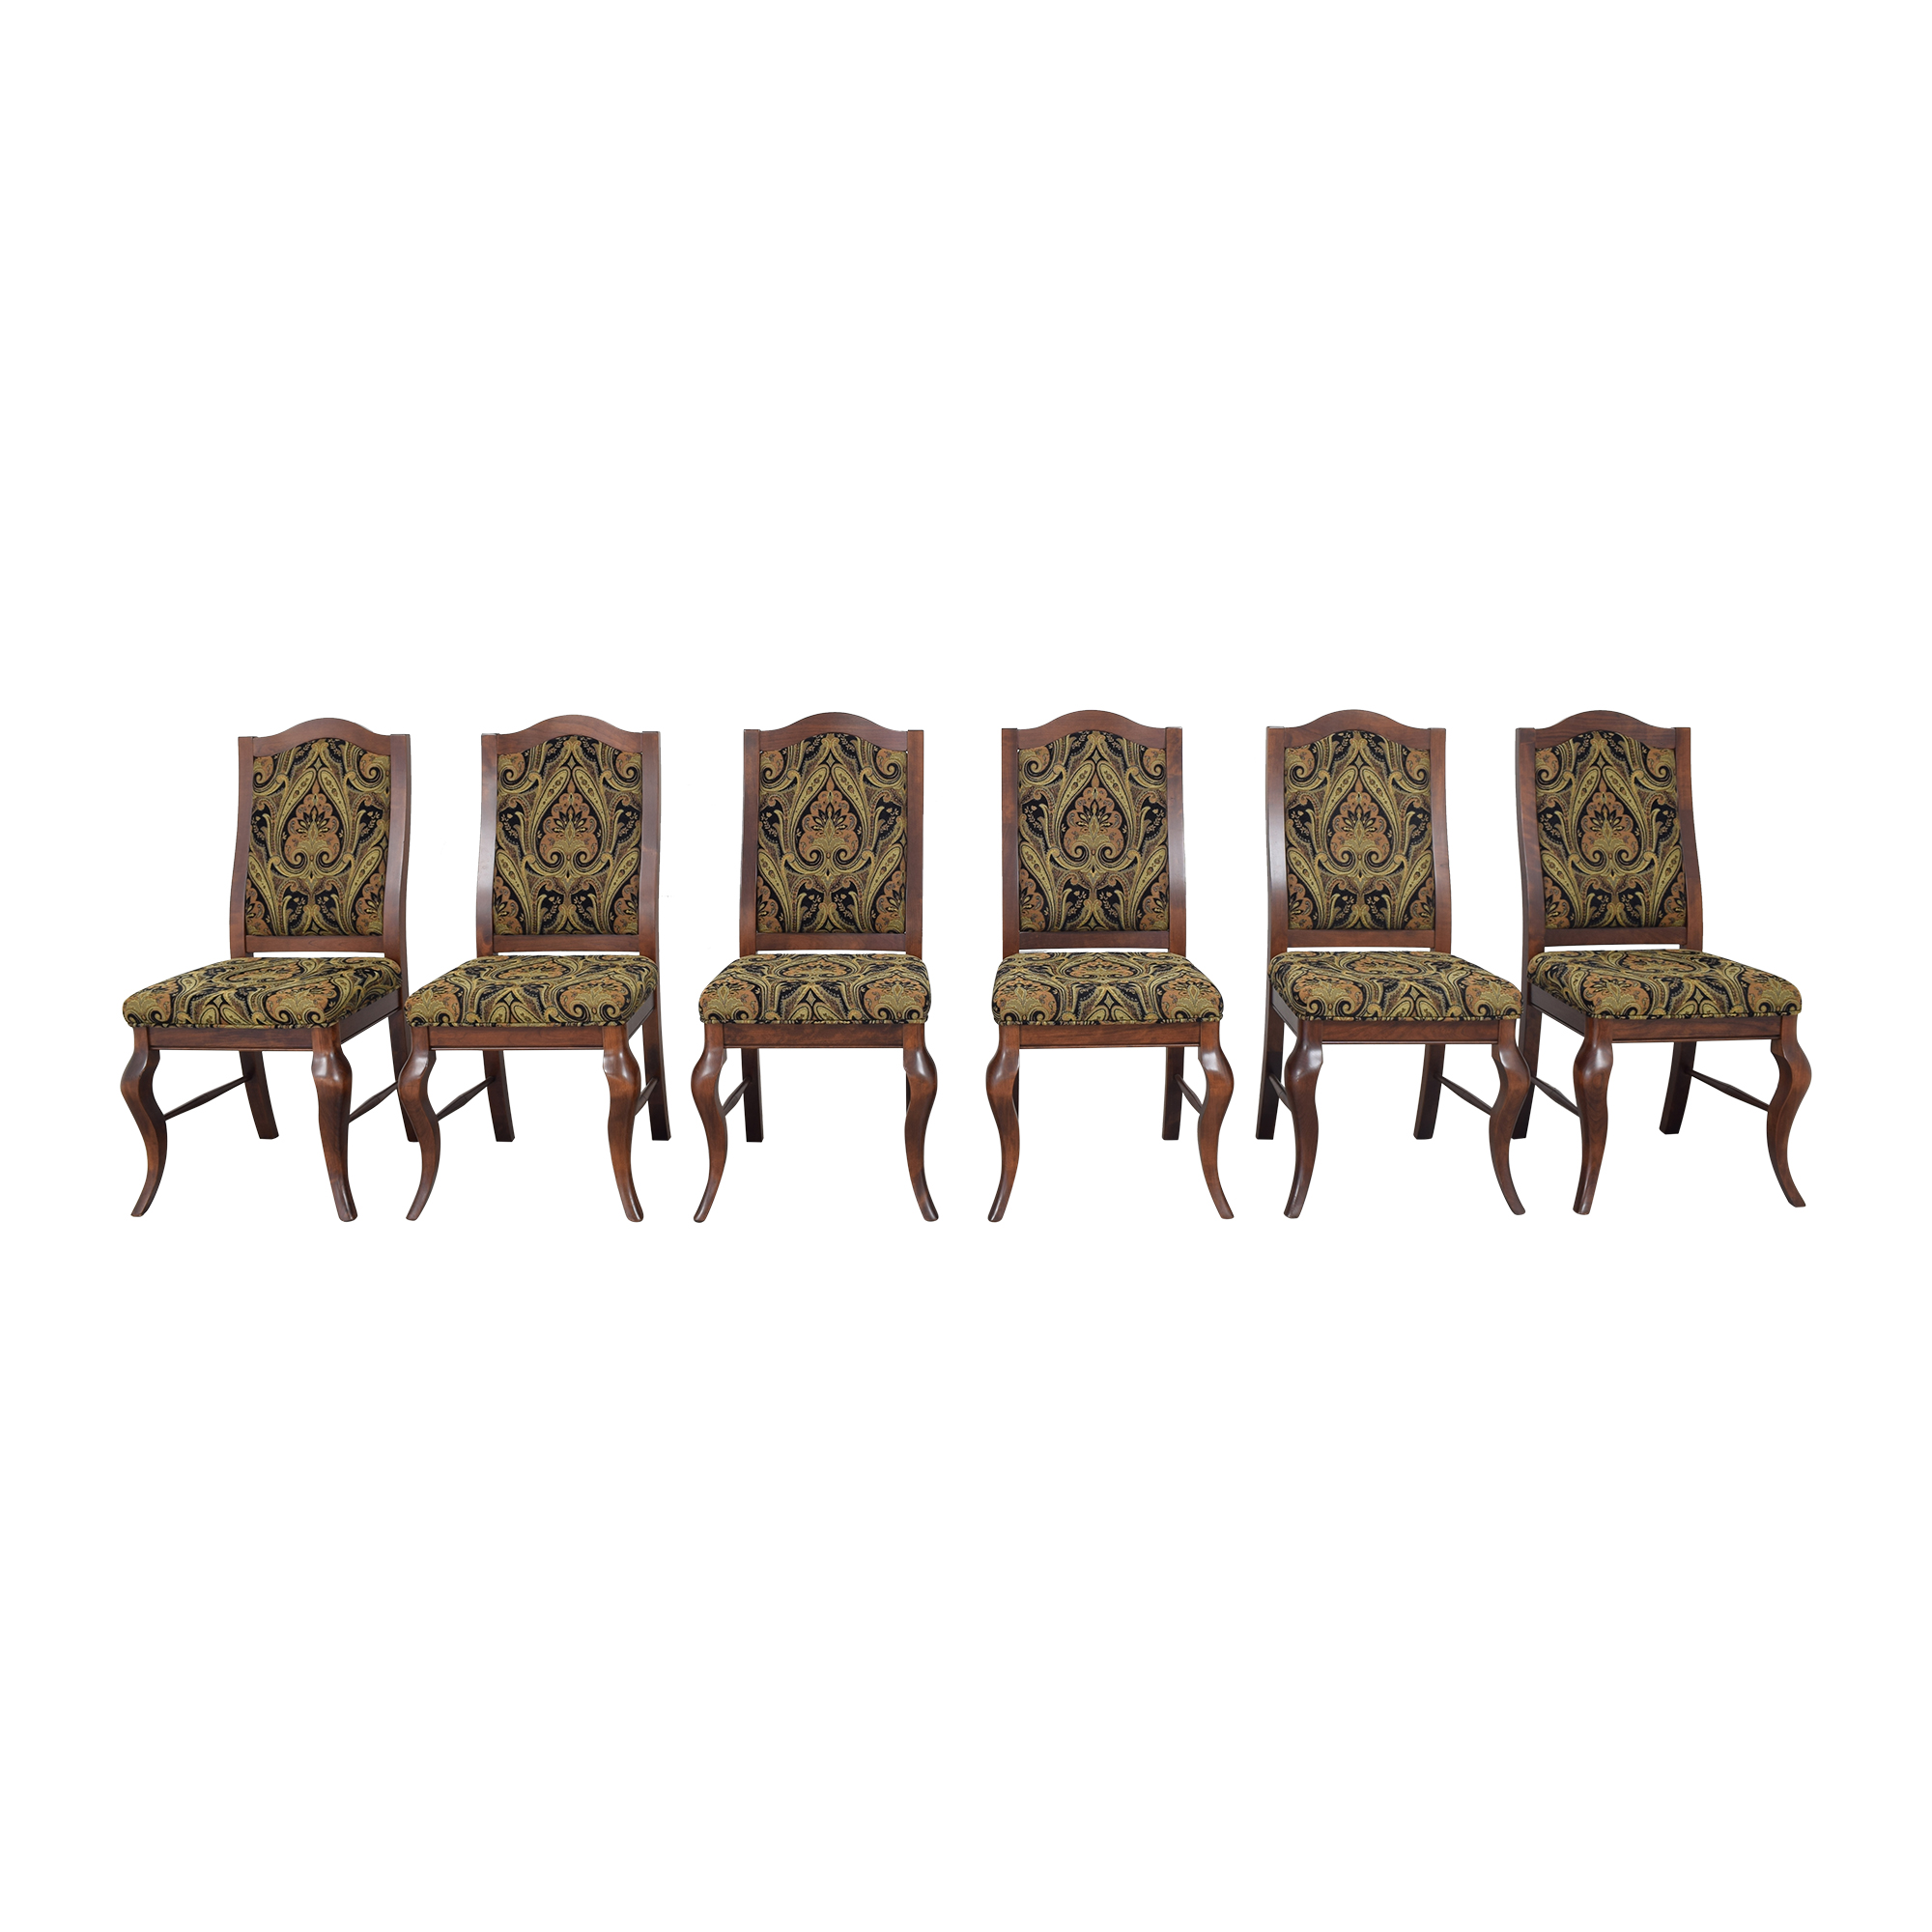 shop Palettes by Winesburg Paisley Upholstered Dining Chairs Palettes by Winesburg Dining Chairs